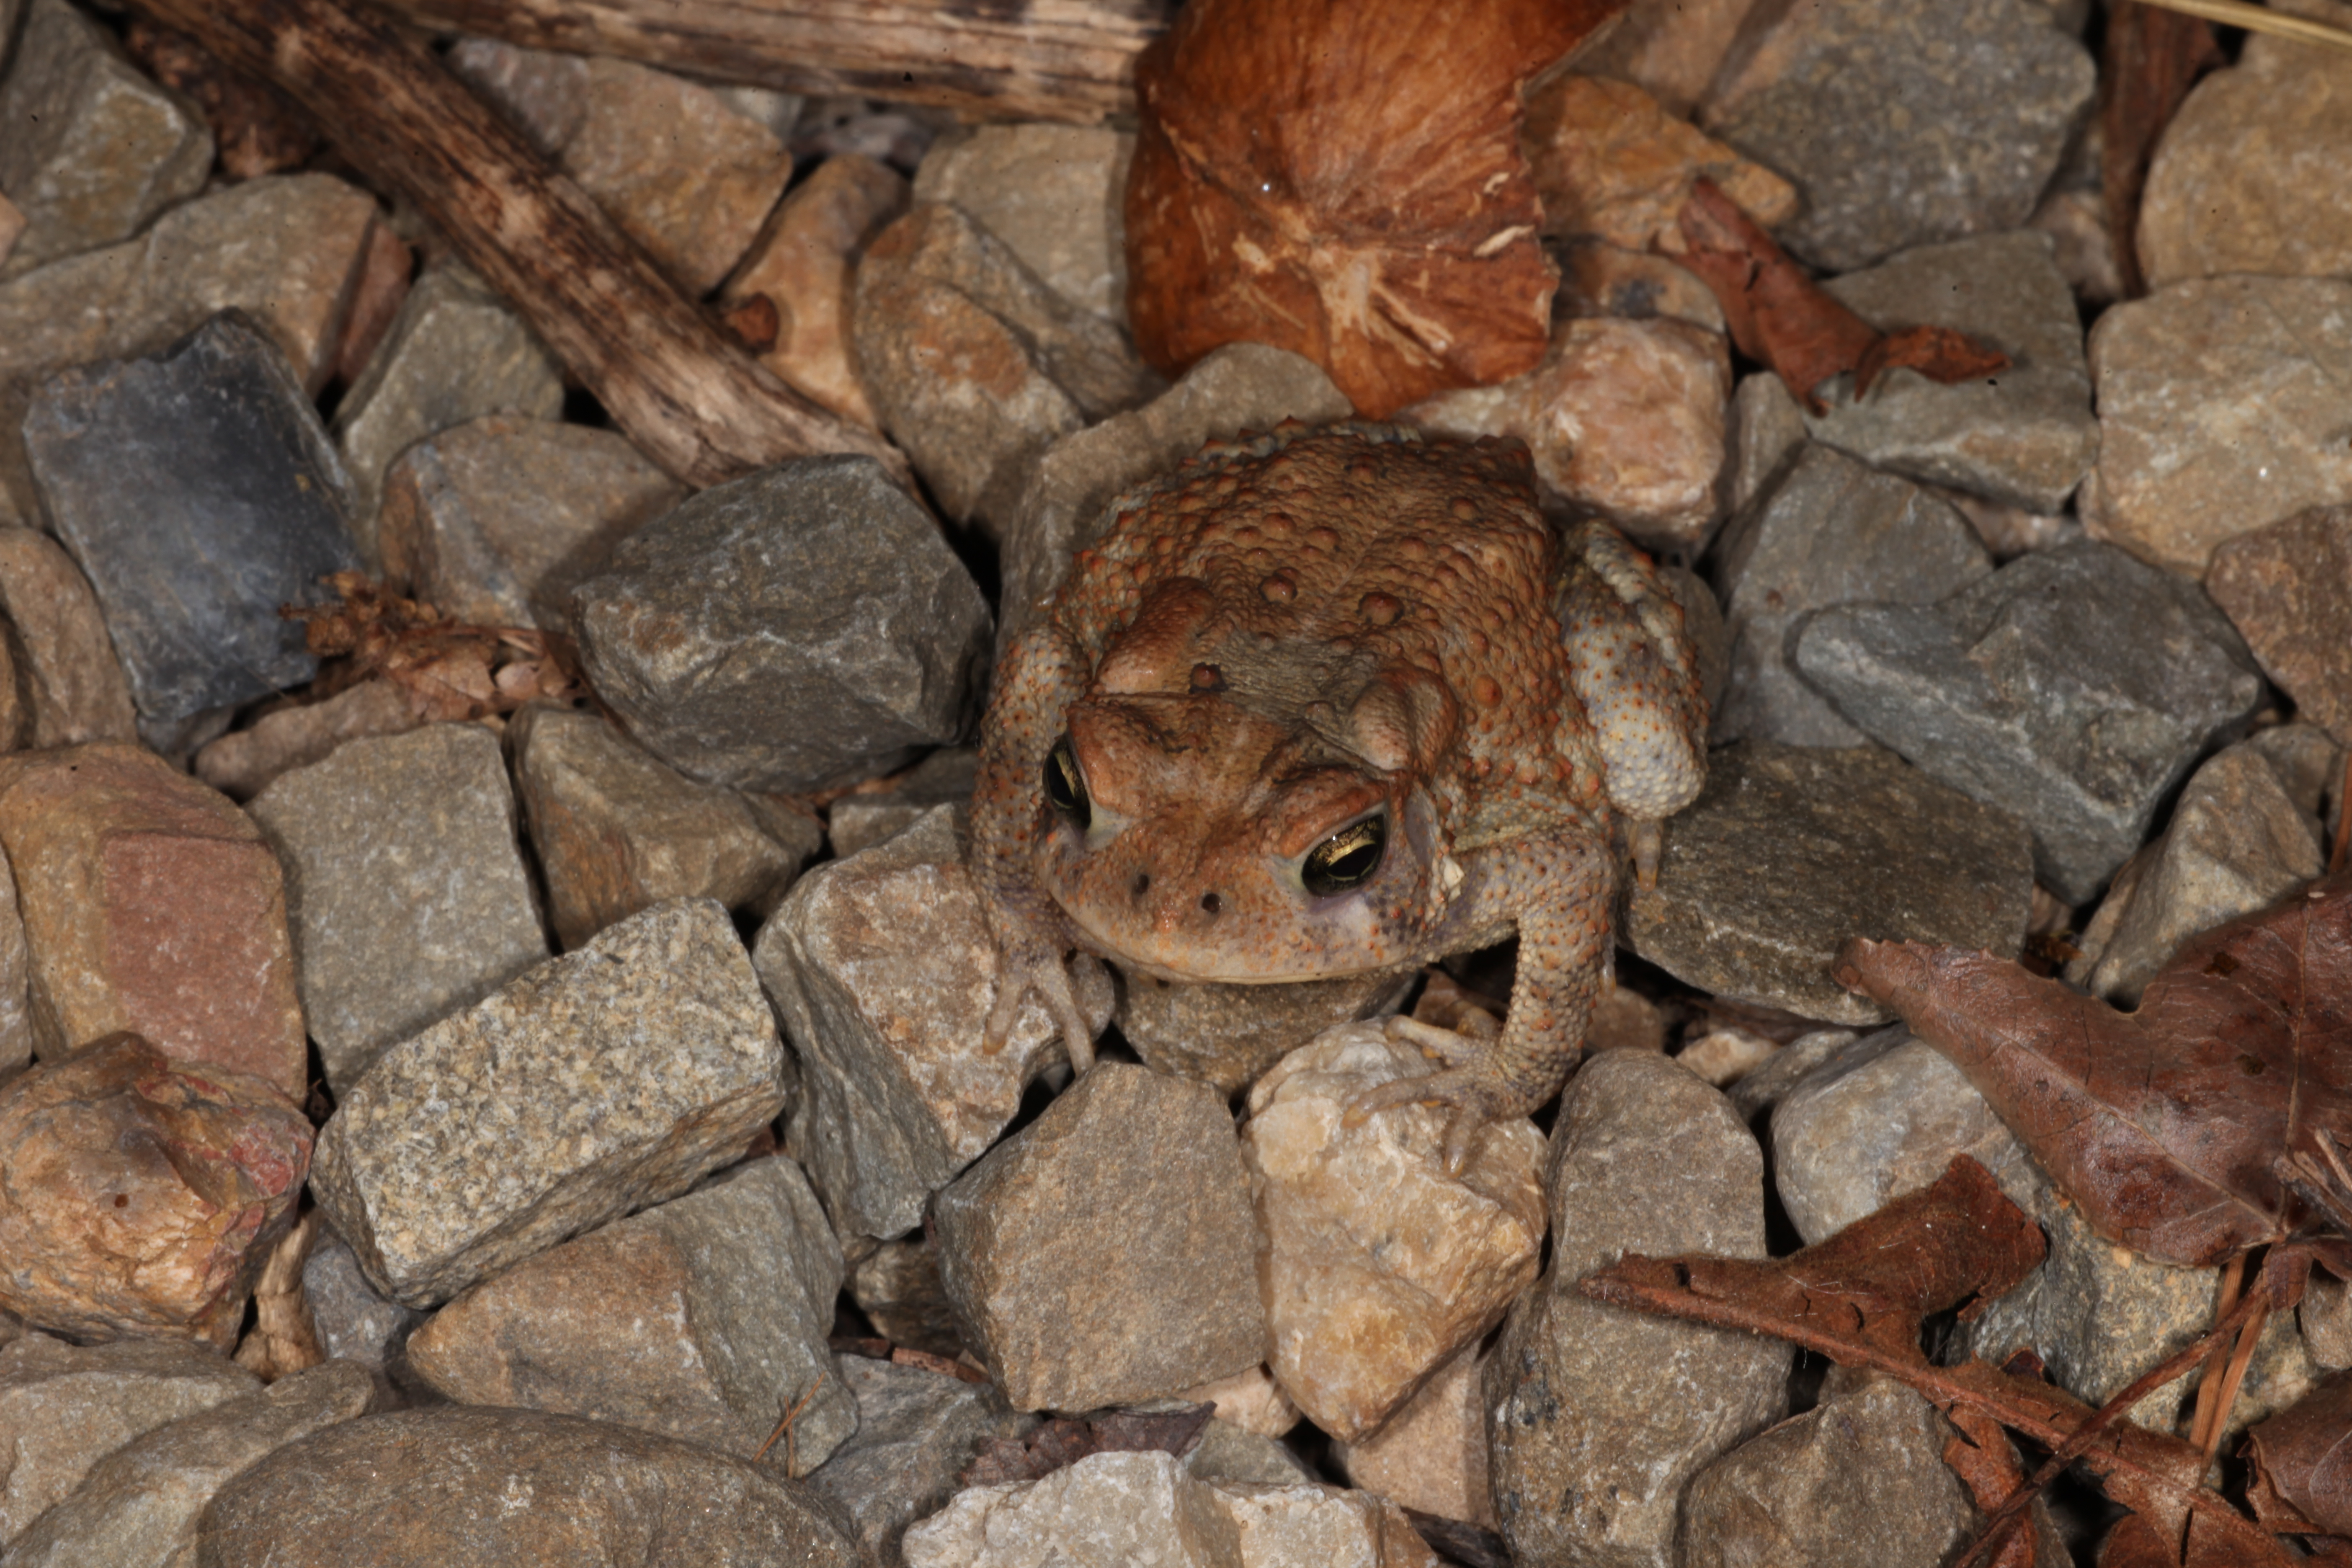 Toad, Amphibian, Blooded, Brown, Bugs, HQ Photo